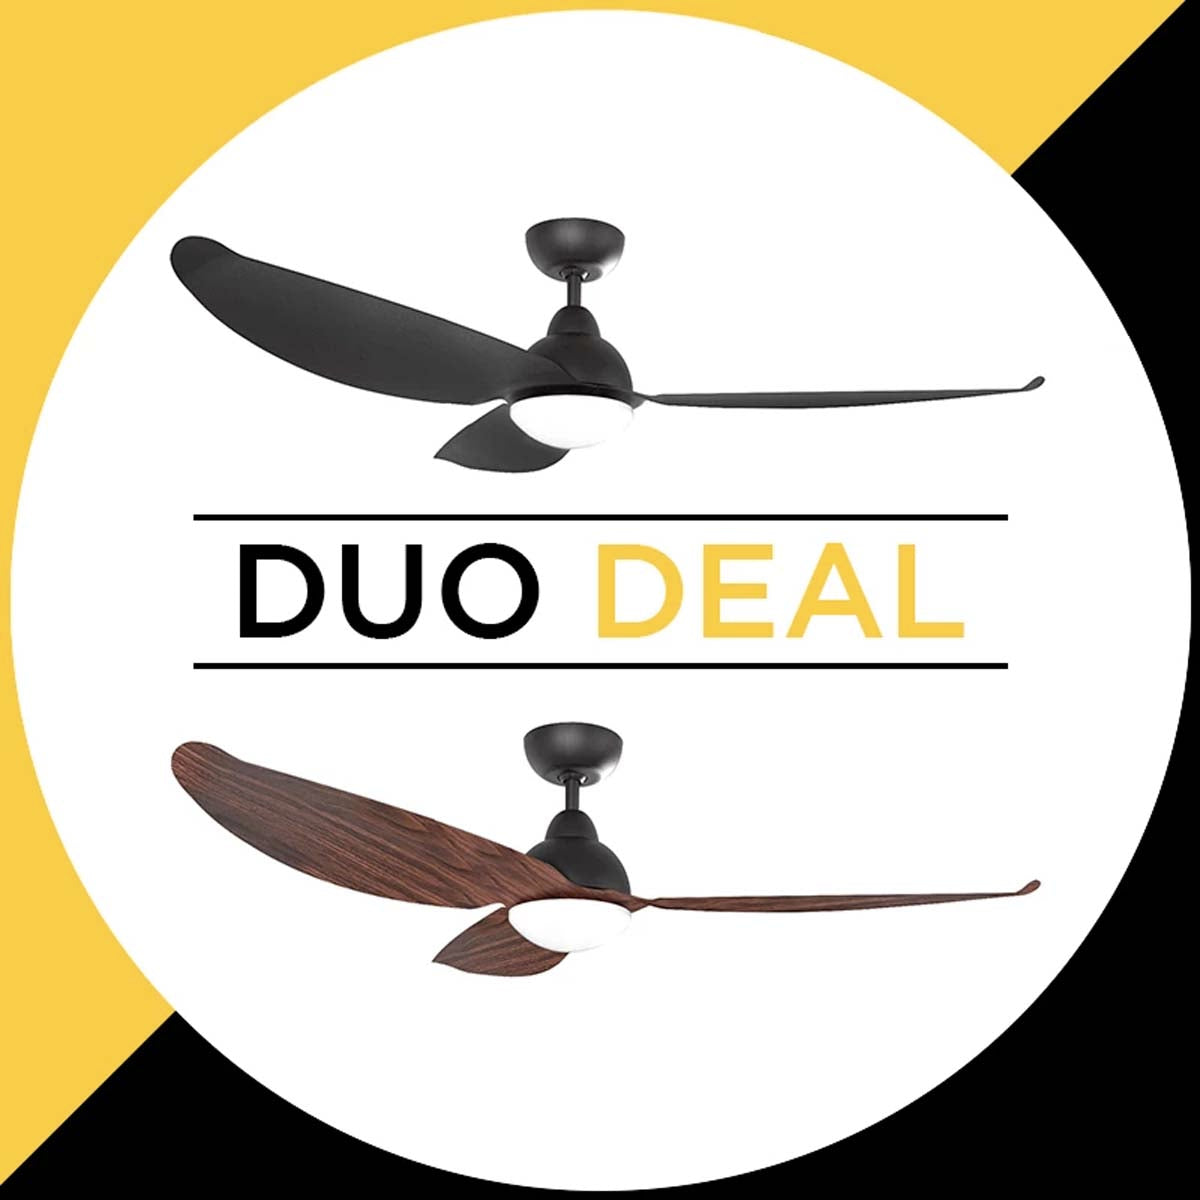 "Alaska Ceiling Fan Pearl II 56"" Solid/ Wood Colour Duo Deal"